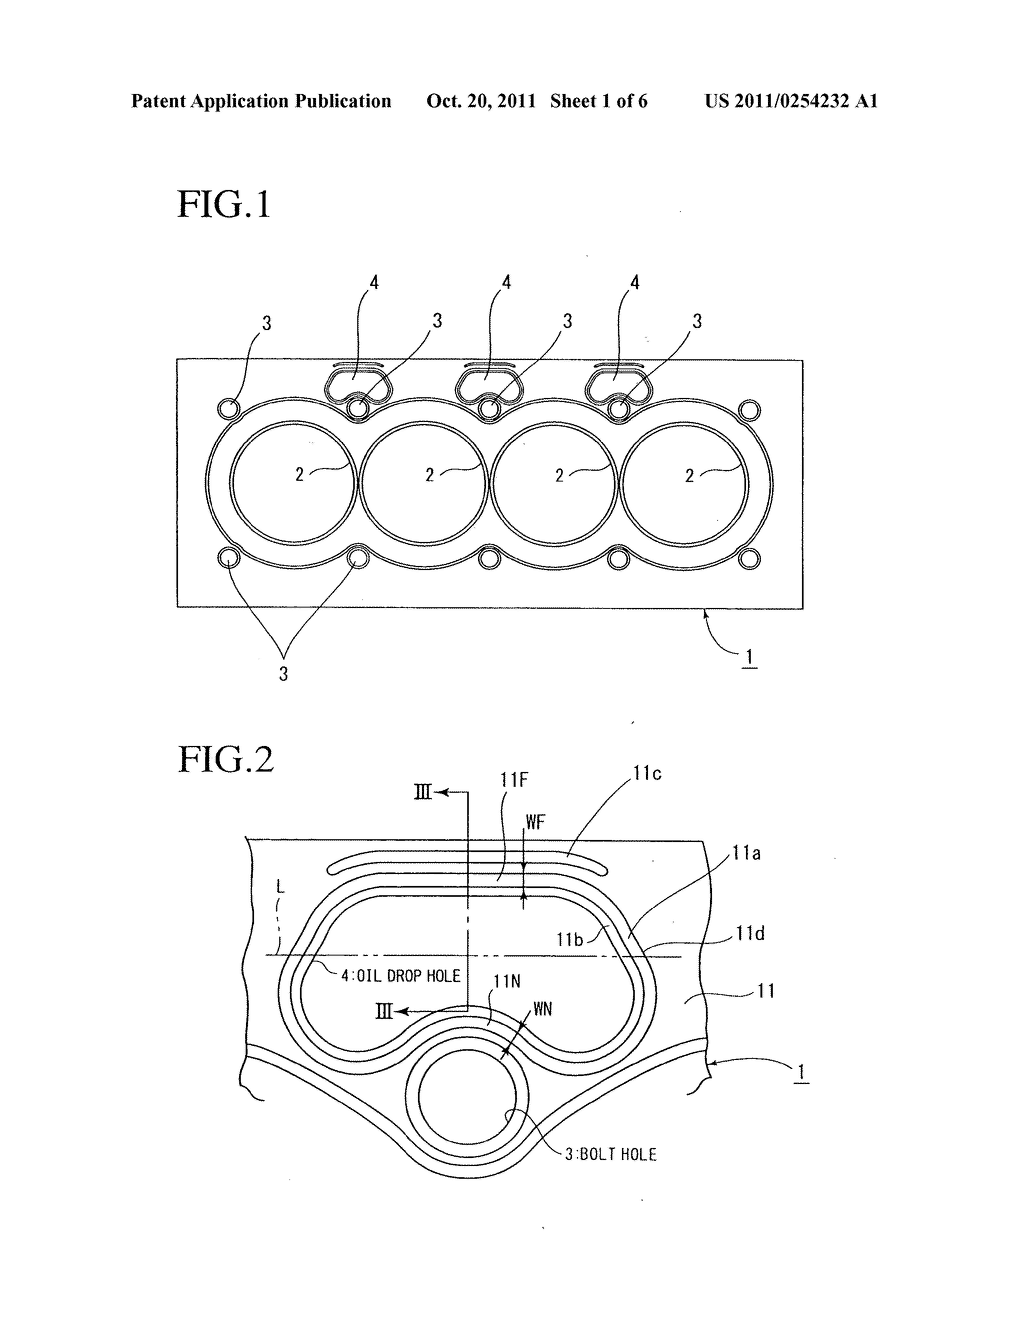 seal structure for oil drop hole in cylinder head gasket diagram 02 explorer cylinder head diagram seal structure for oil drop hole in cylinder head gasket diagram, schematic, and image 02